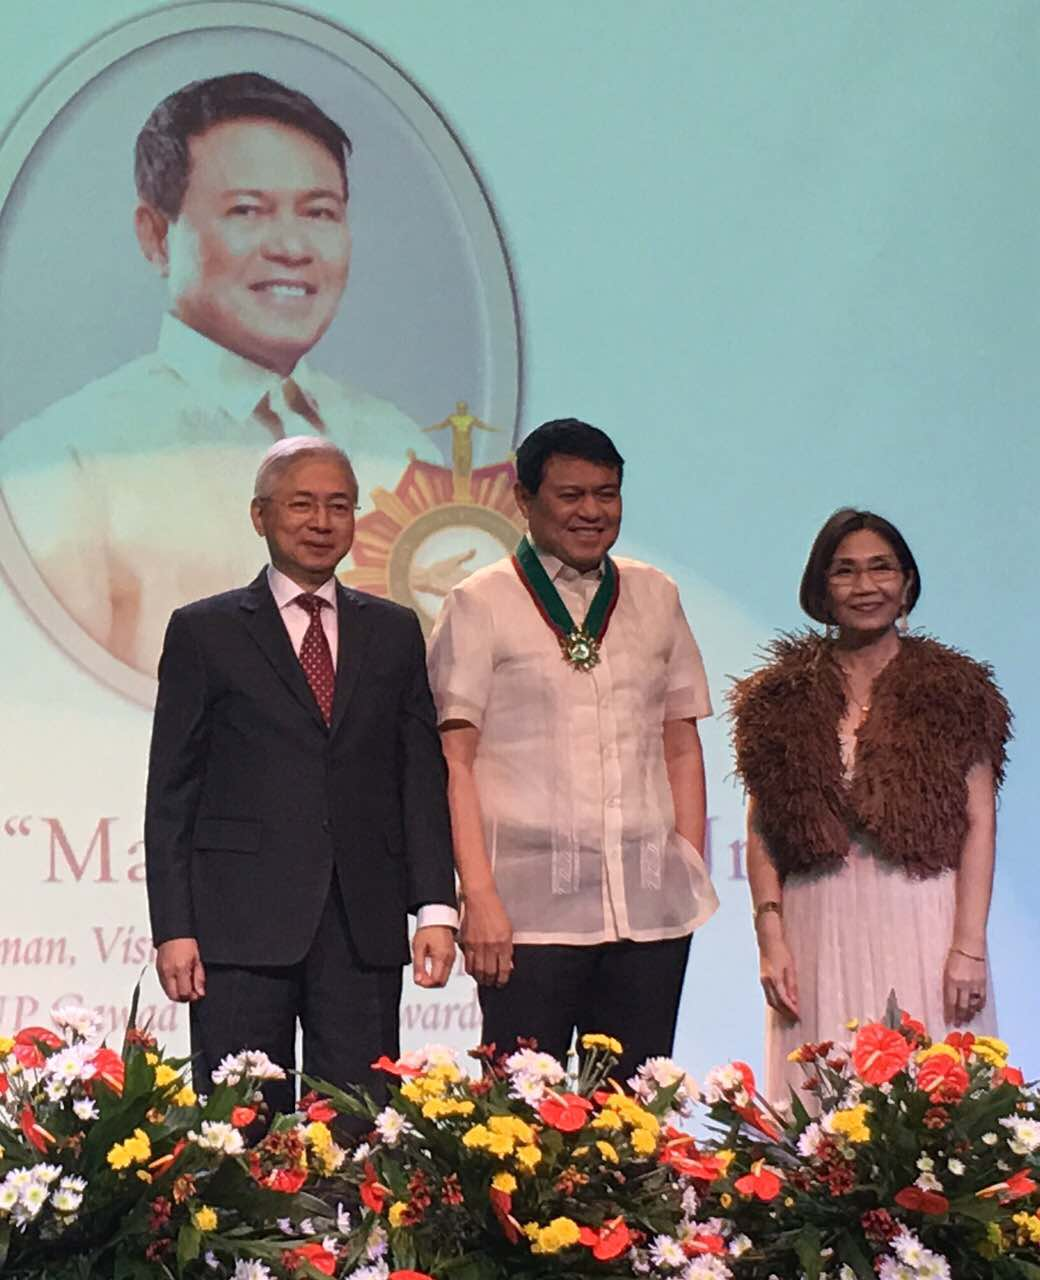 UP Gawad Oblation Award